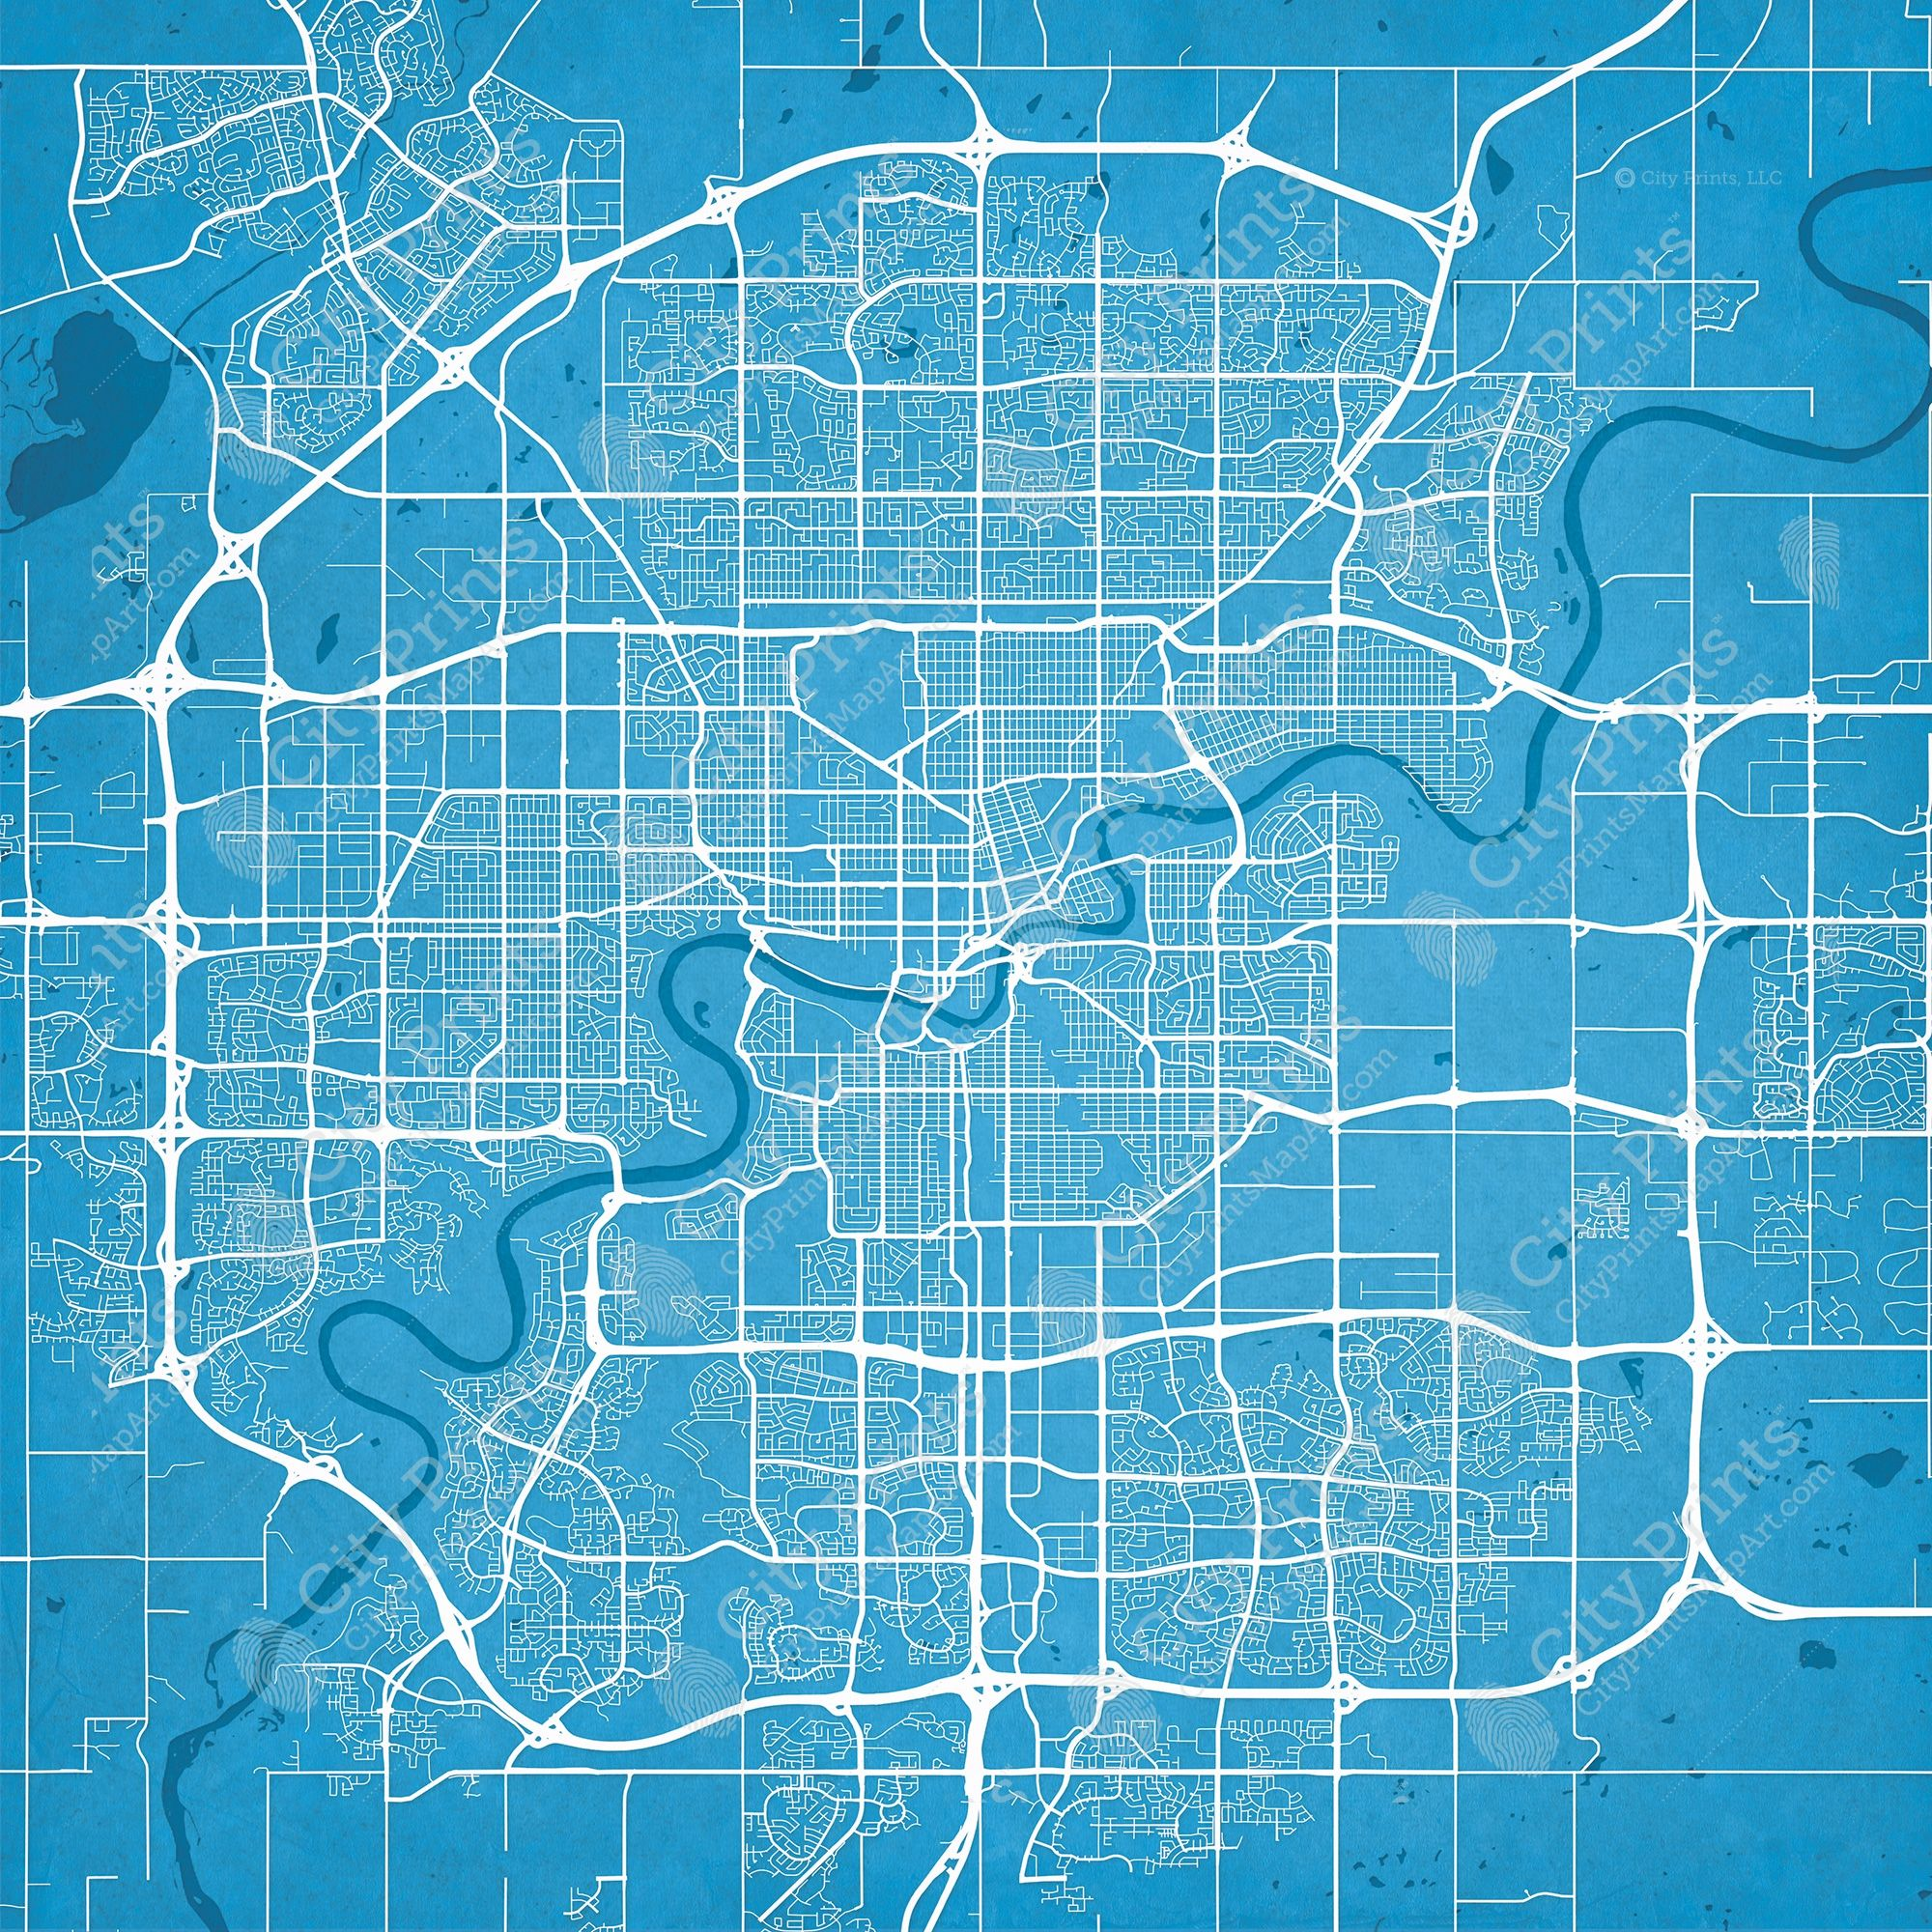 Edmonton canada map art edmonton canada map art city prints gumiabroncs Choice Image